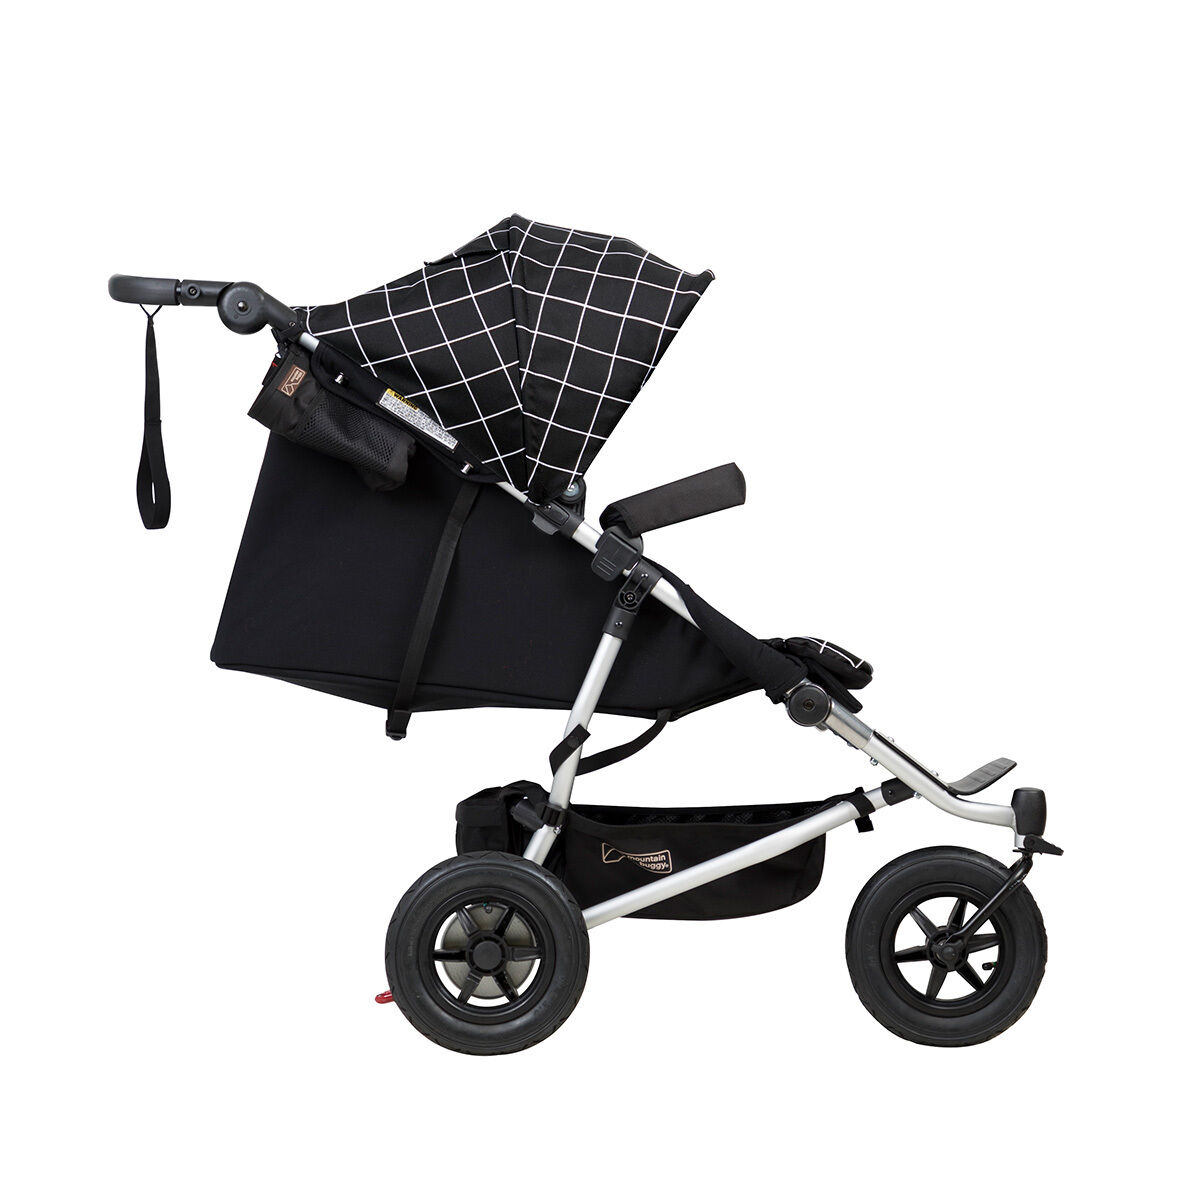 Doppel Kinderwagen Urban Jungle Mountain Buggy Duet V3 Doppel Kinderwagen Gitter